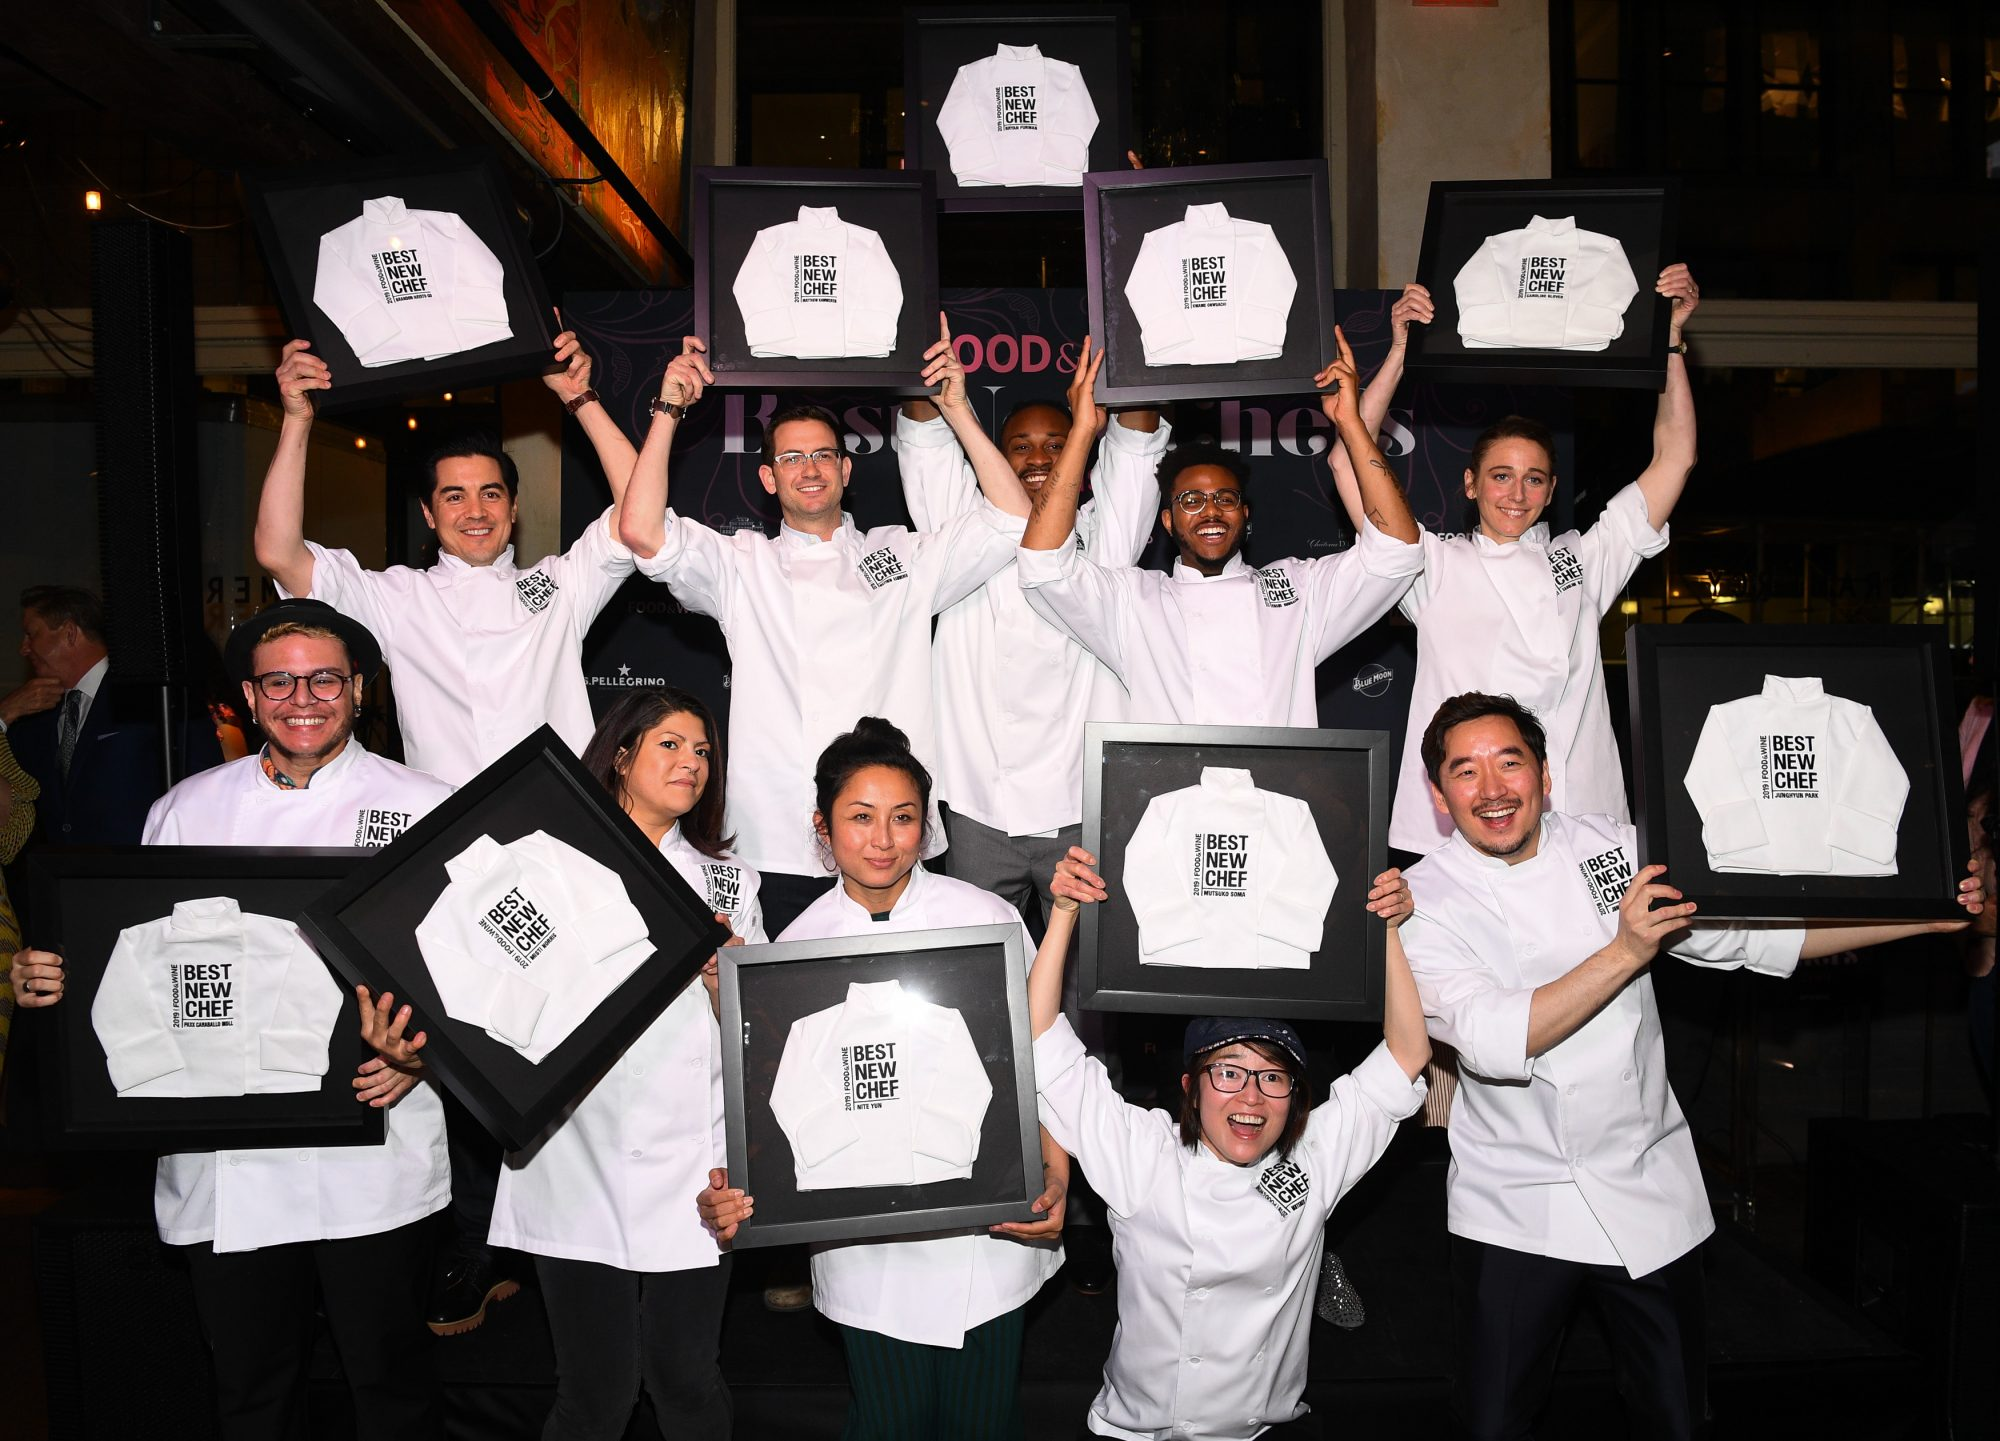 The 2019 Class of Best New Chefs Celebrate at Gramercy Tavern